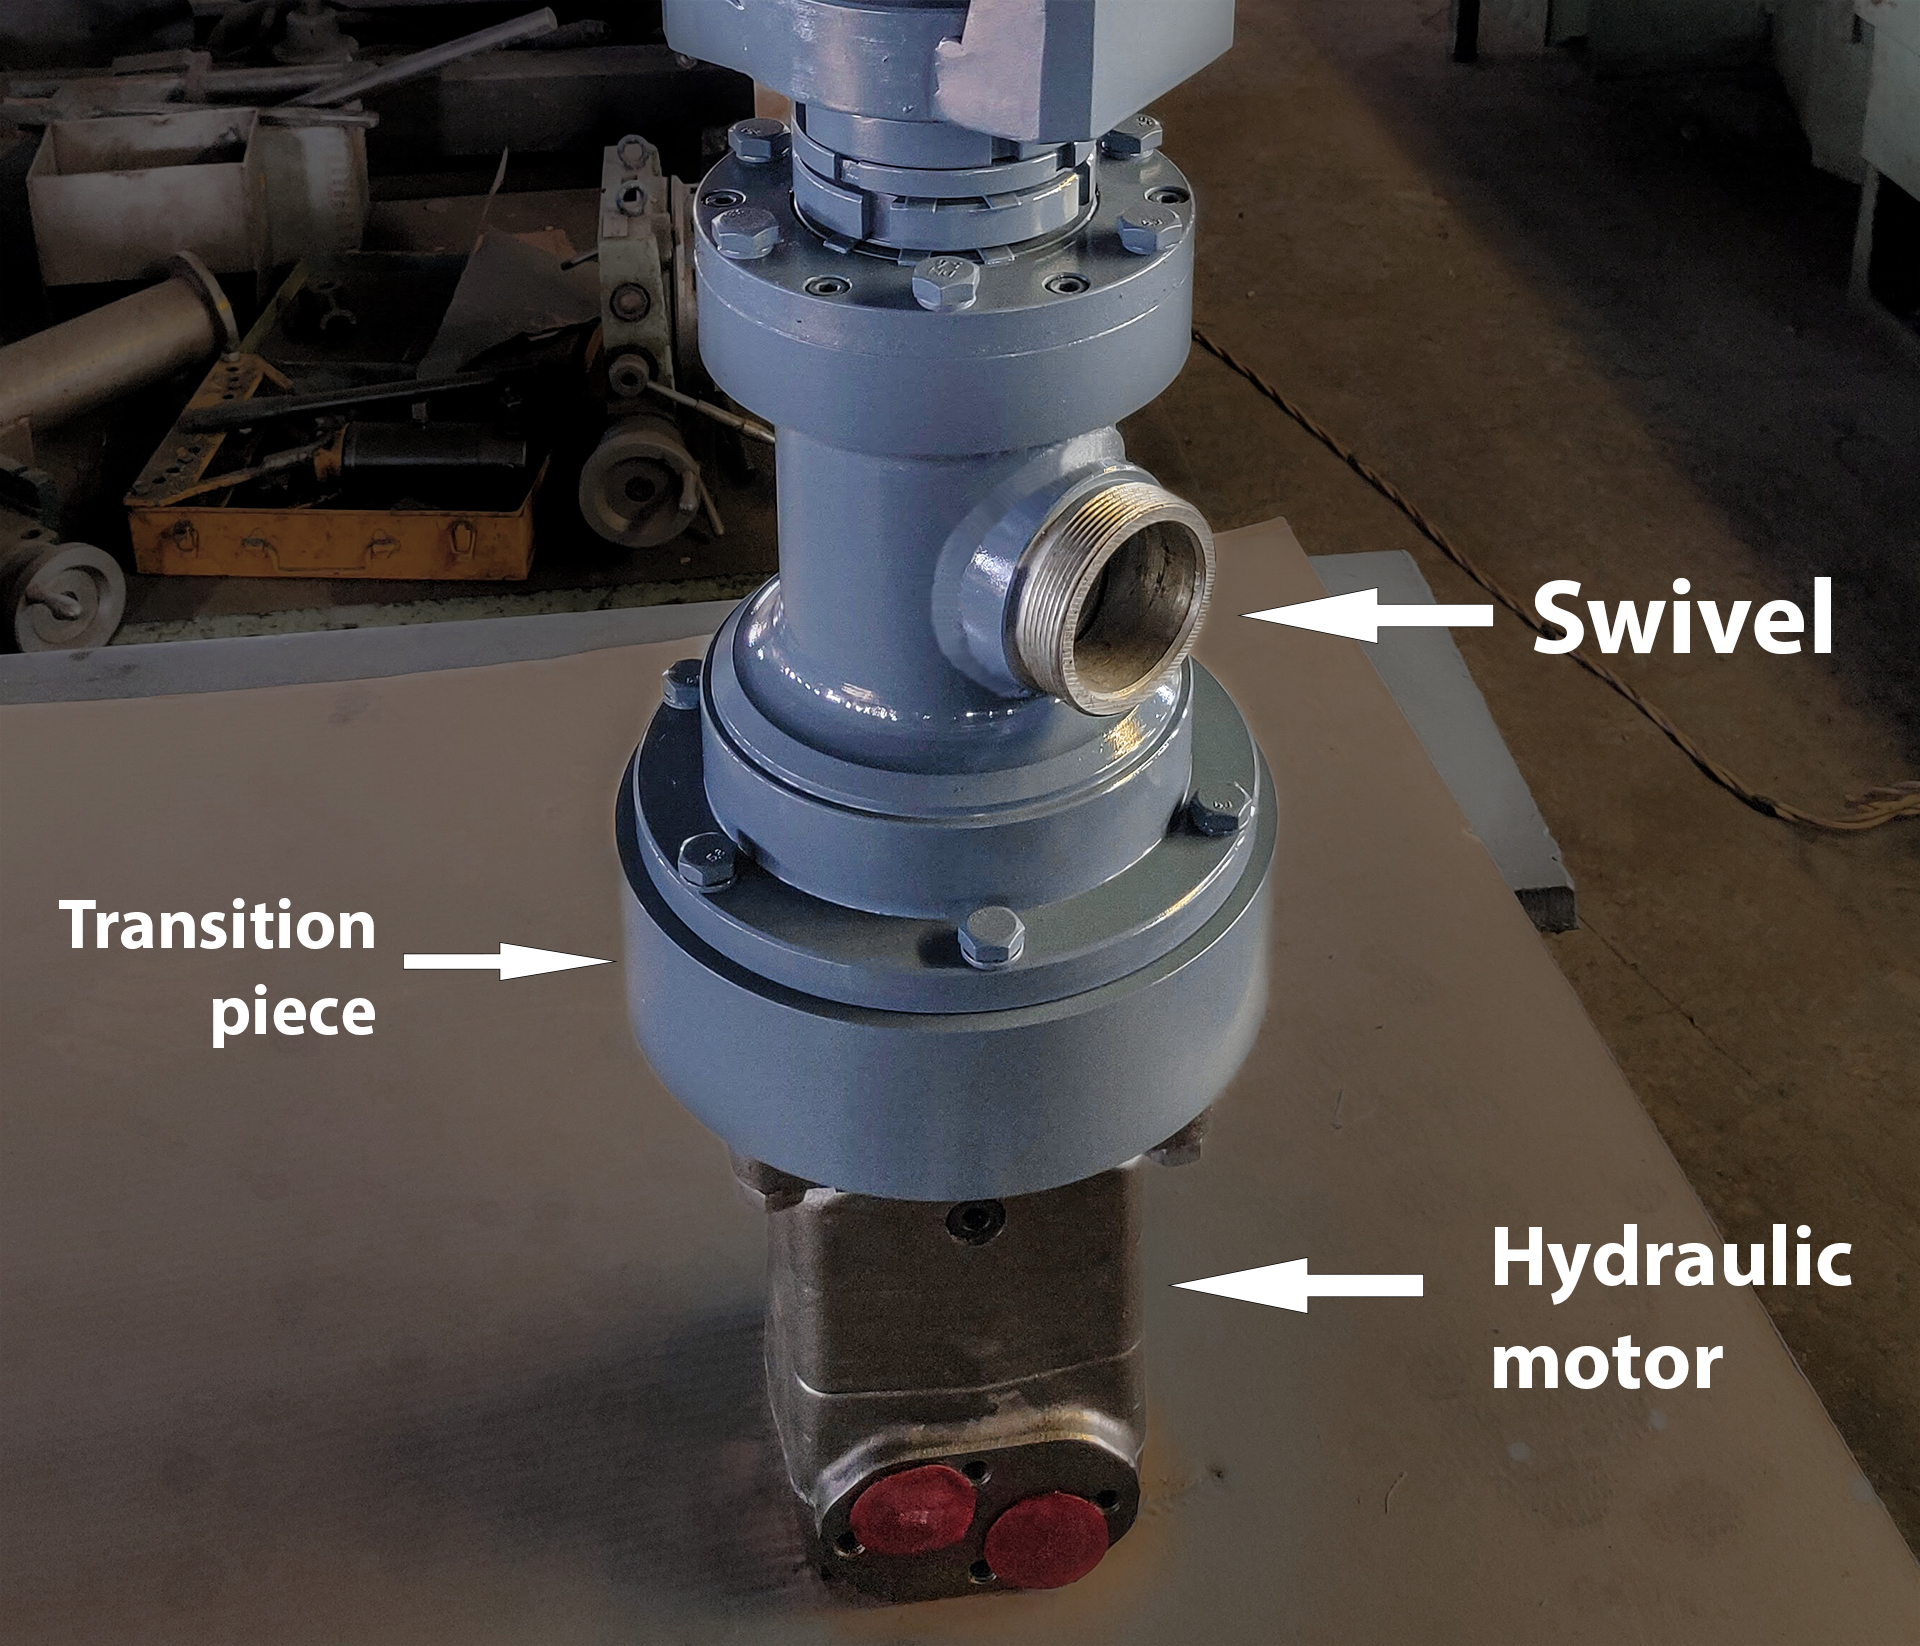 Swivel and hydraulic motor adapter